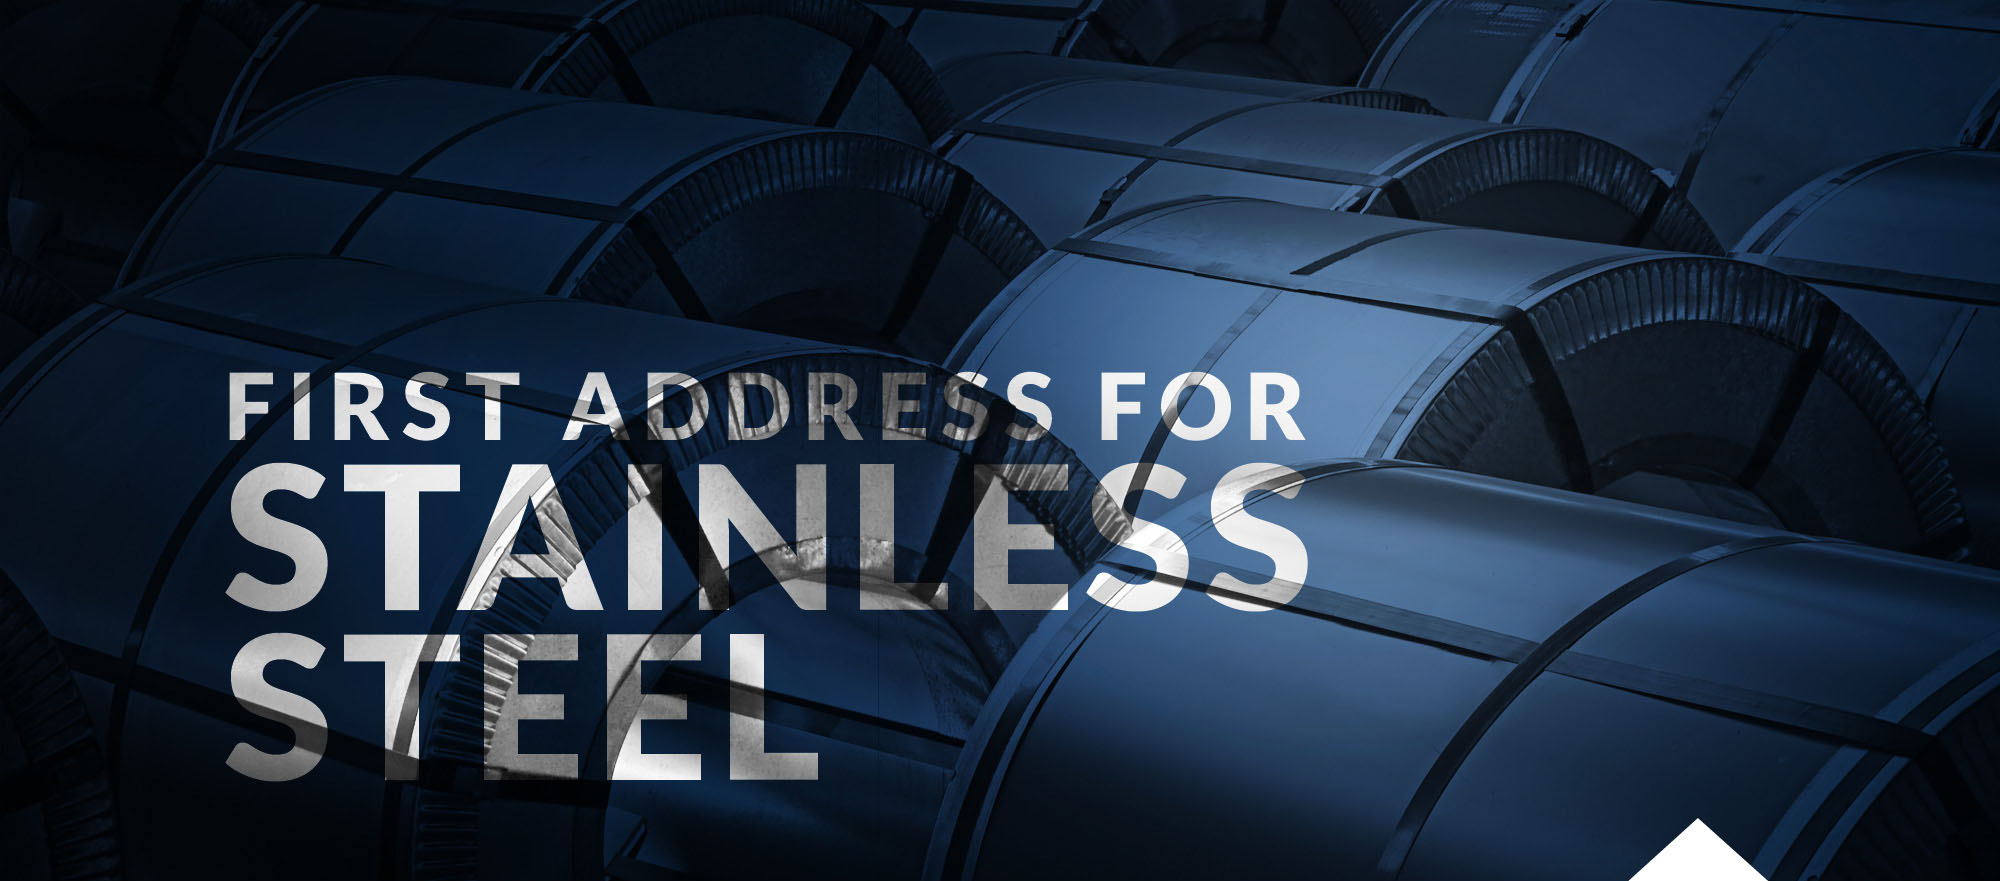 First address for stainless steel